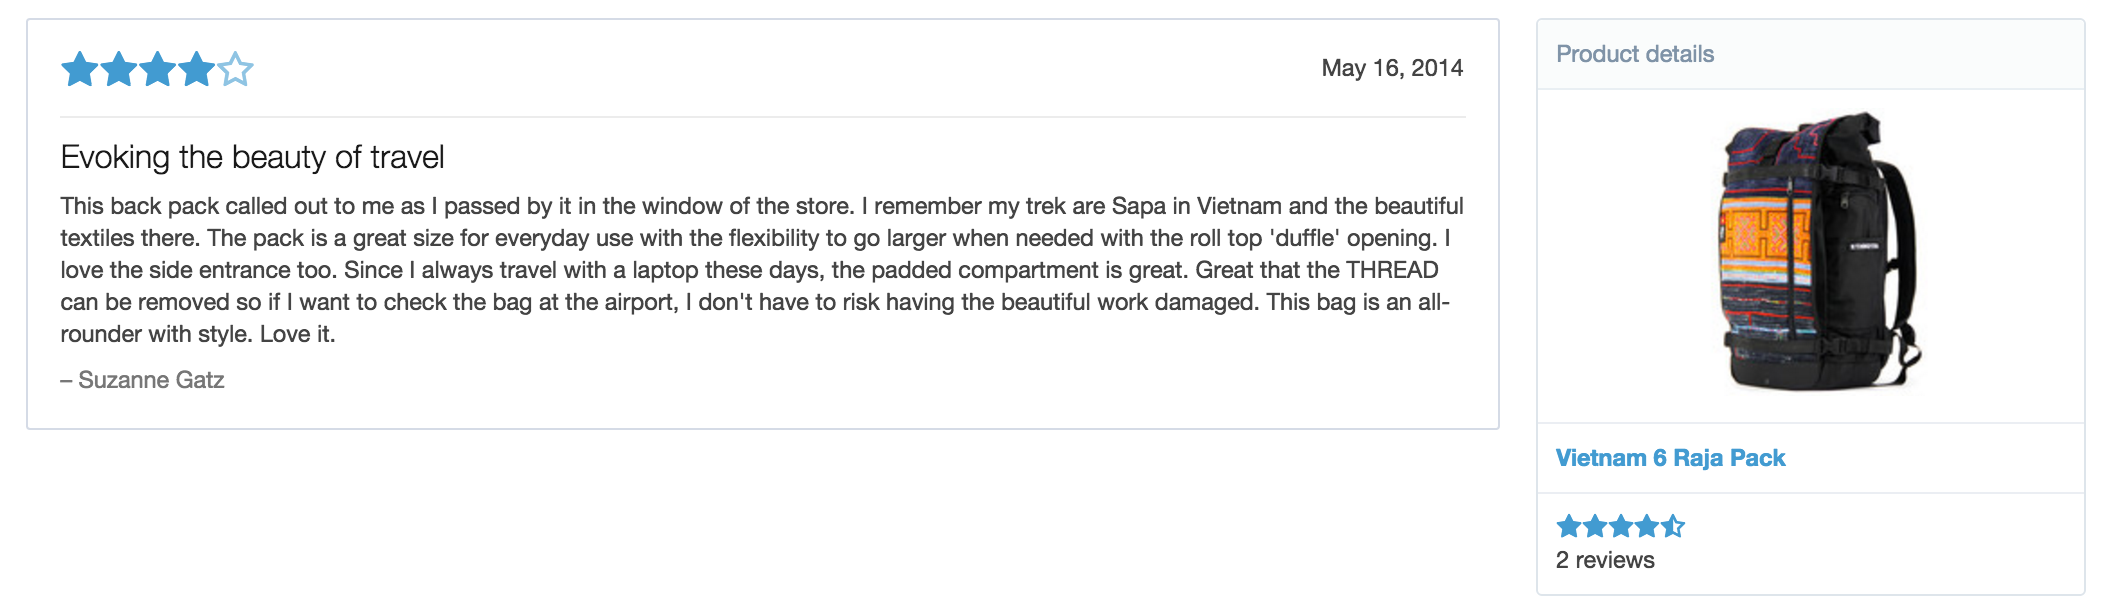 Vietnam 6 Raja Pack Product Review